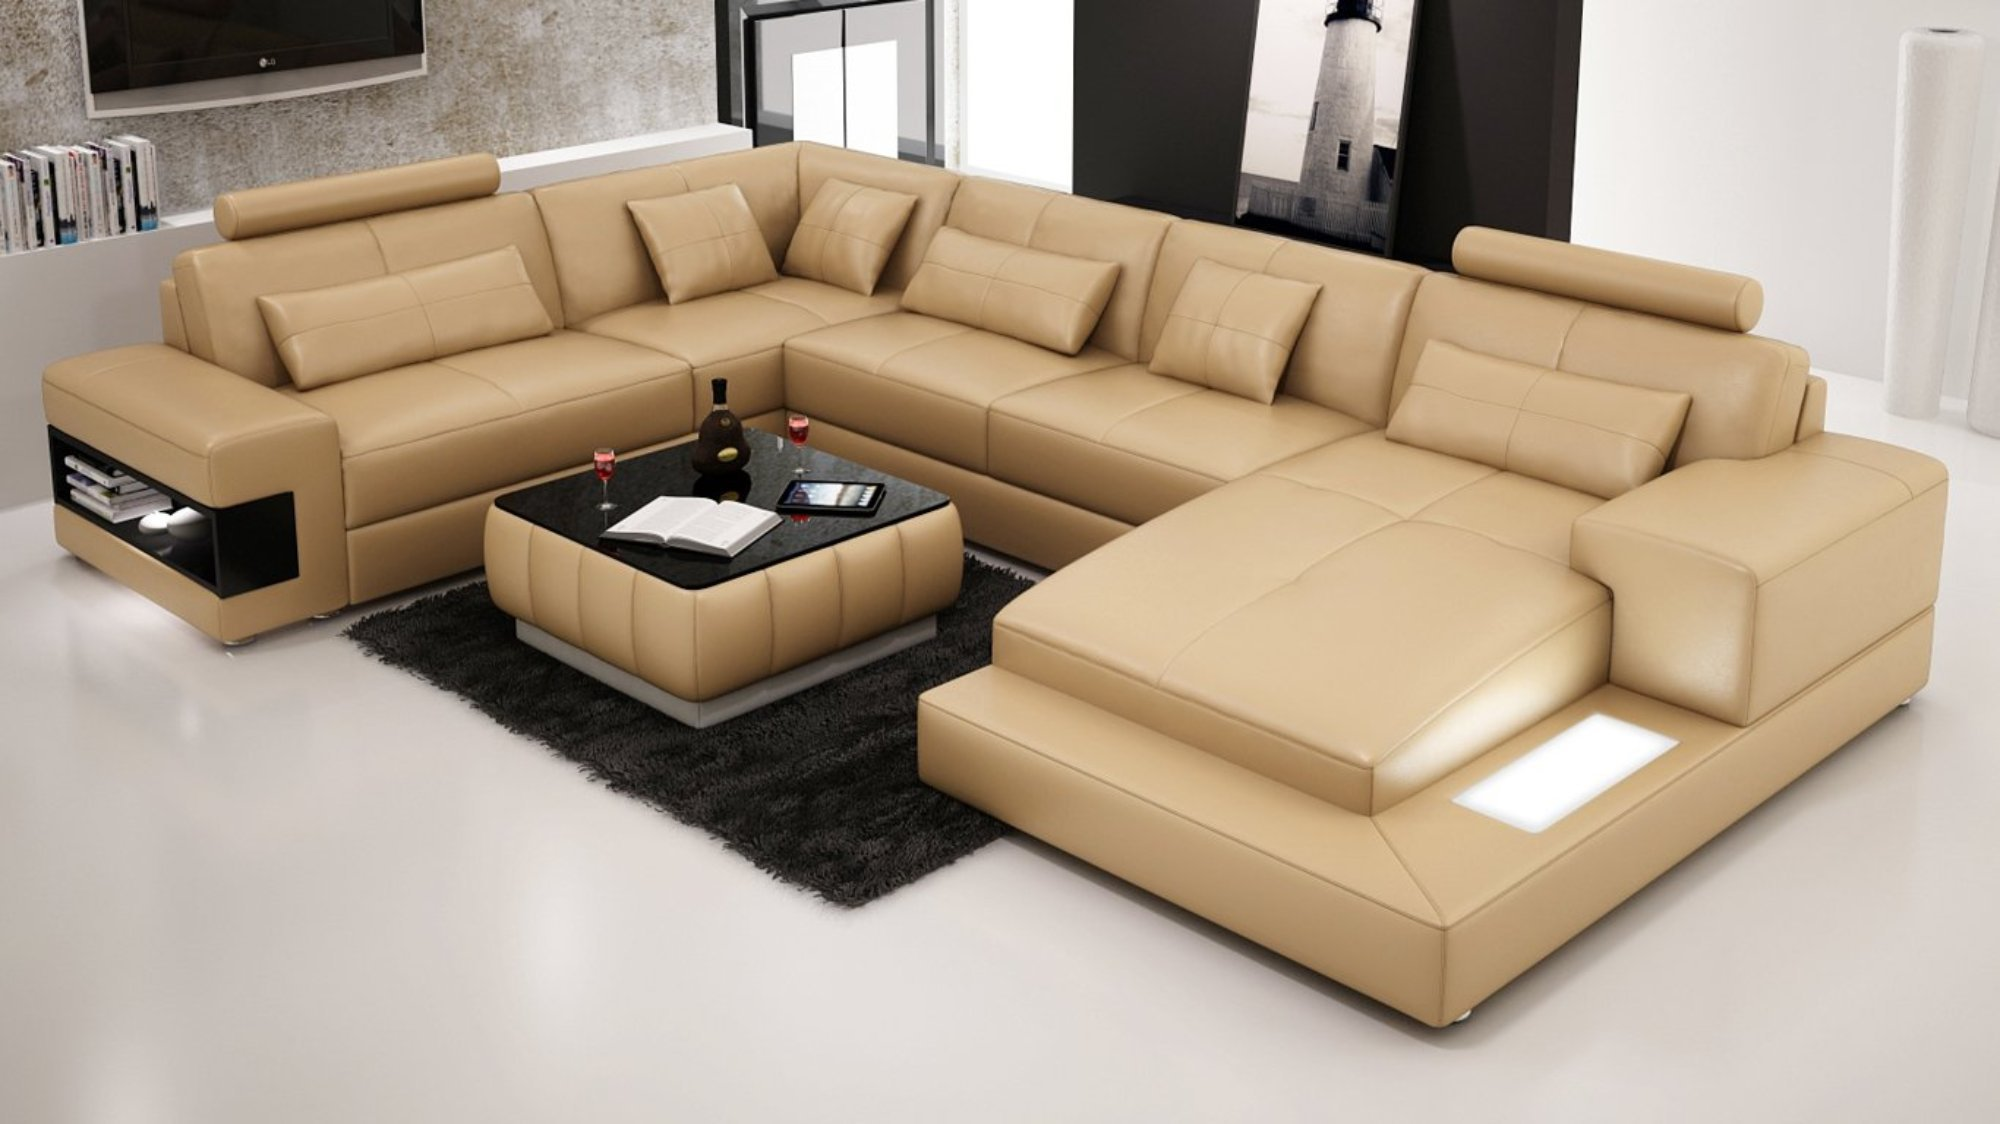 Designer Modern Large Leather Sofa Corner Suite New Settee